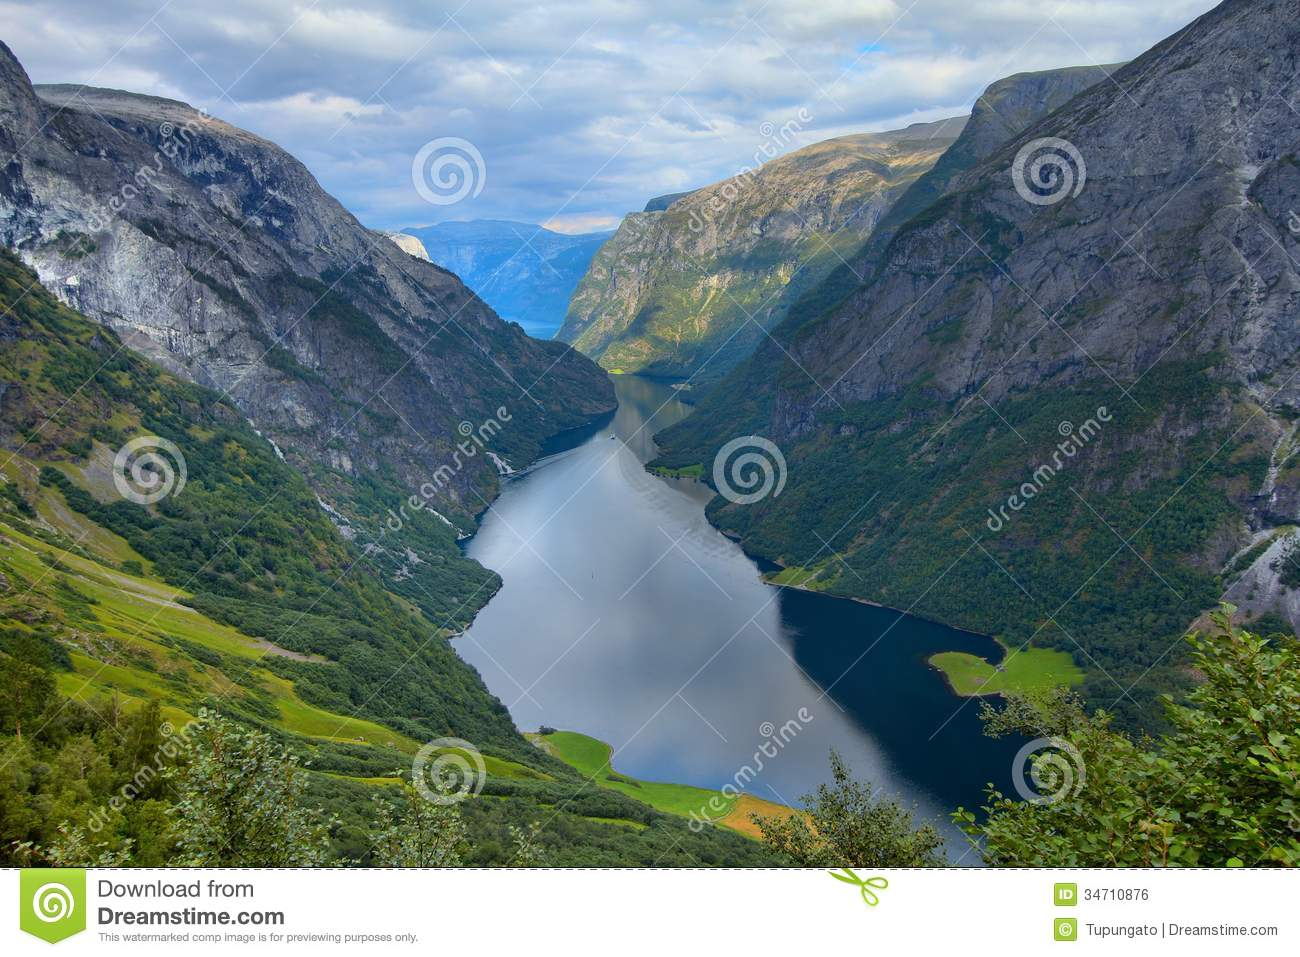 dating sites in norway landscape